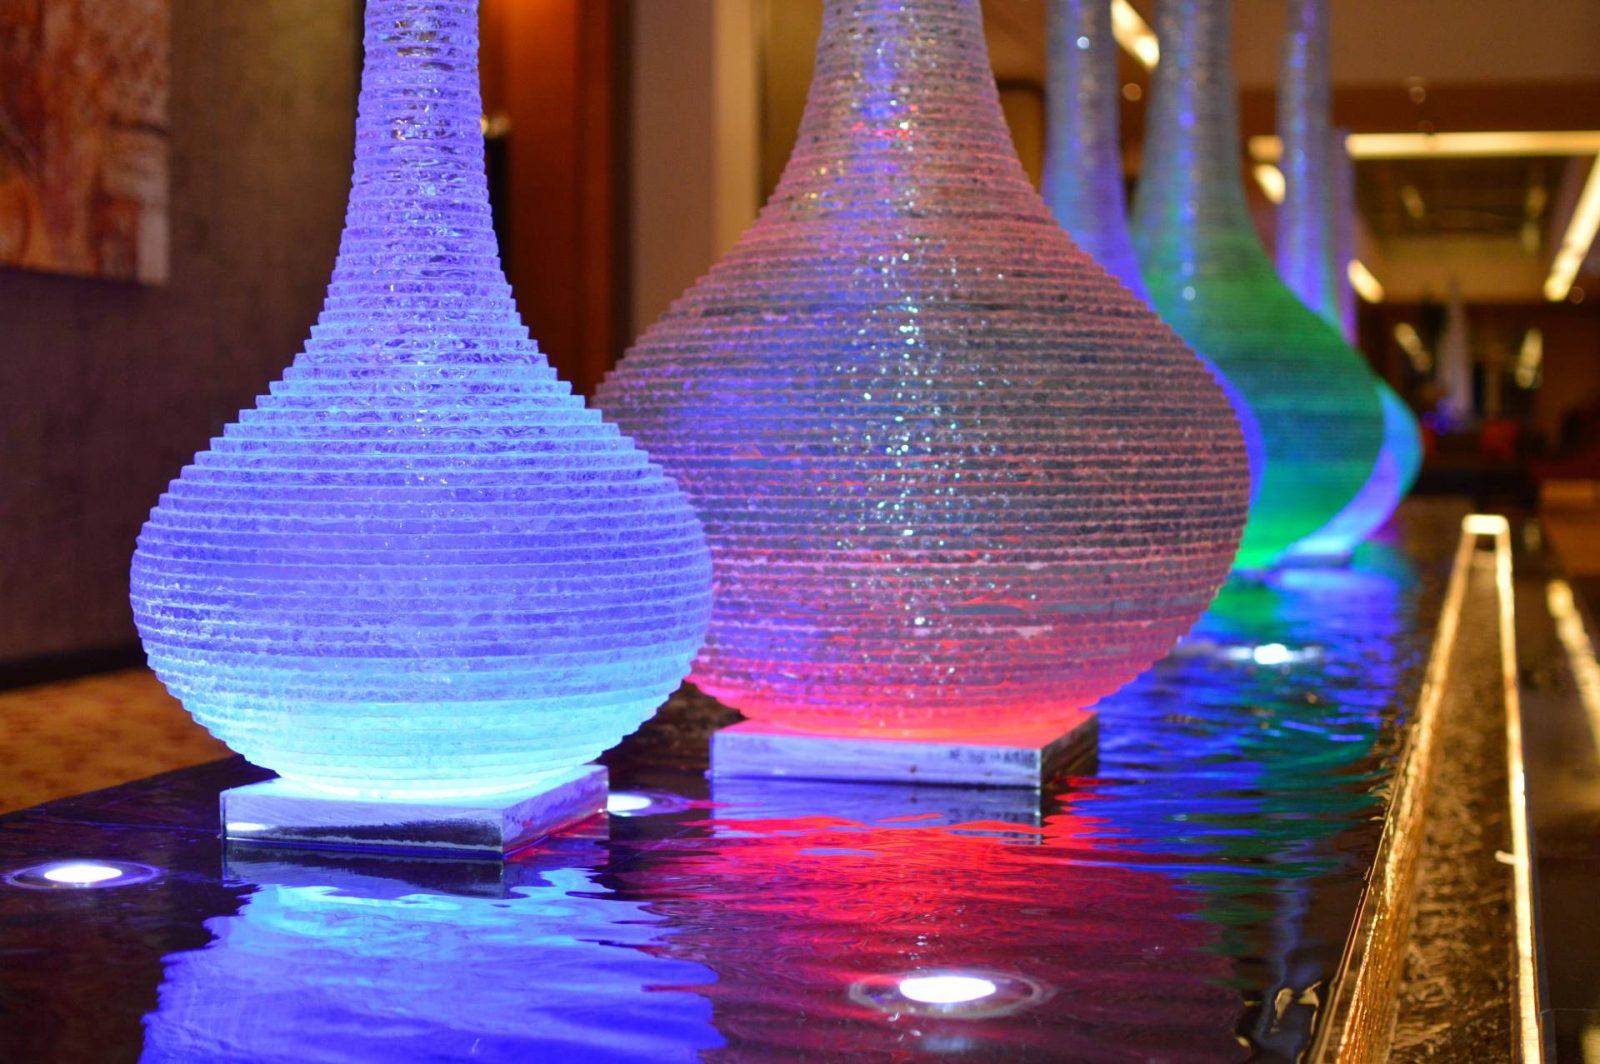 lights inside Al Raha Beach Hotel, Abu Dhabi